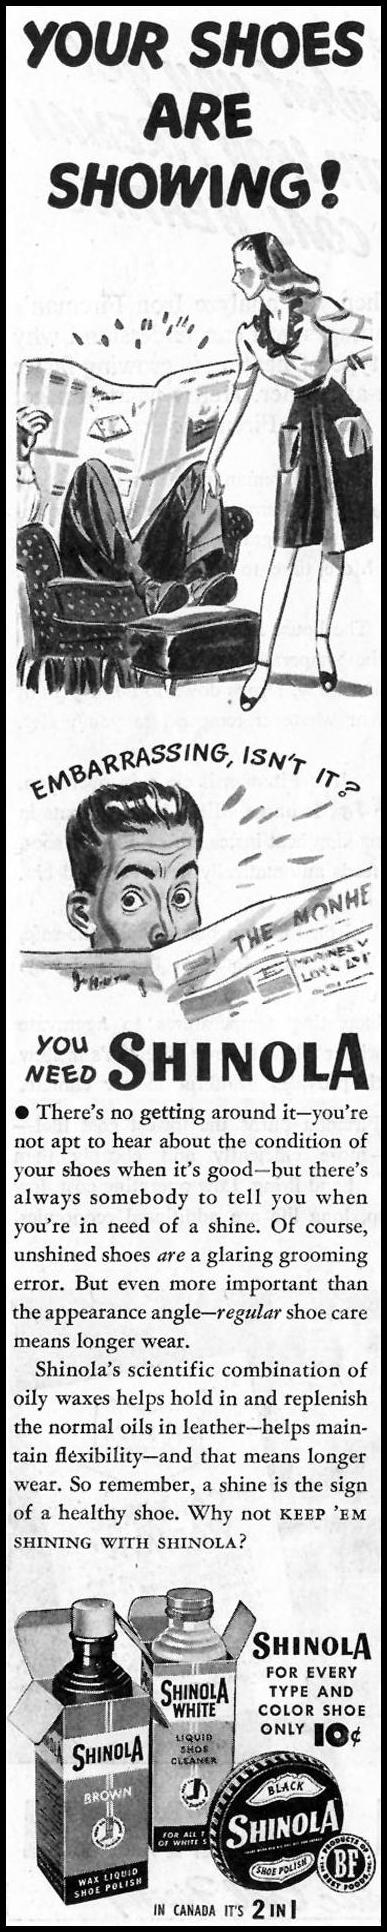 SHINOLA SHOE POLISH SATURDAY EVENING POST 10/06/1945 p. 72